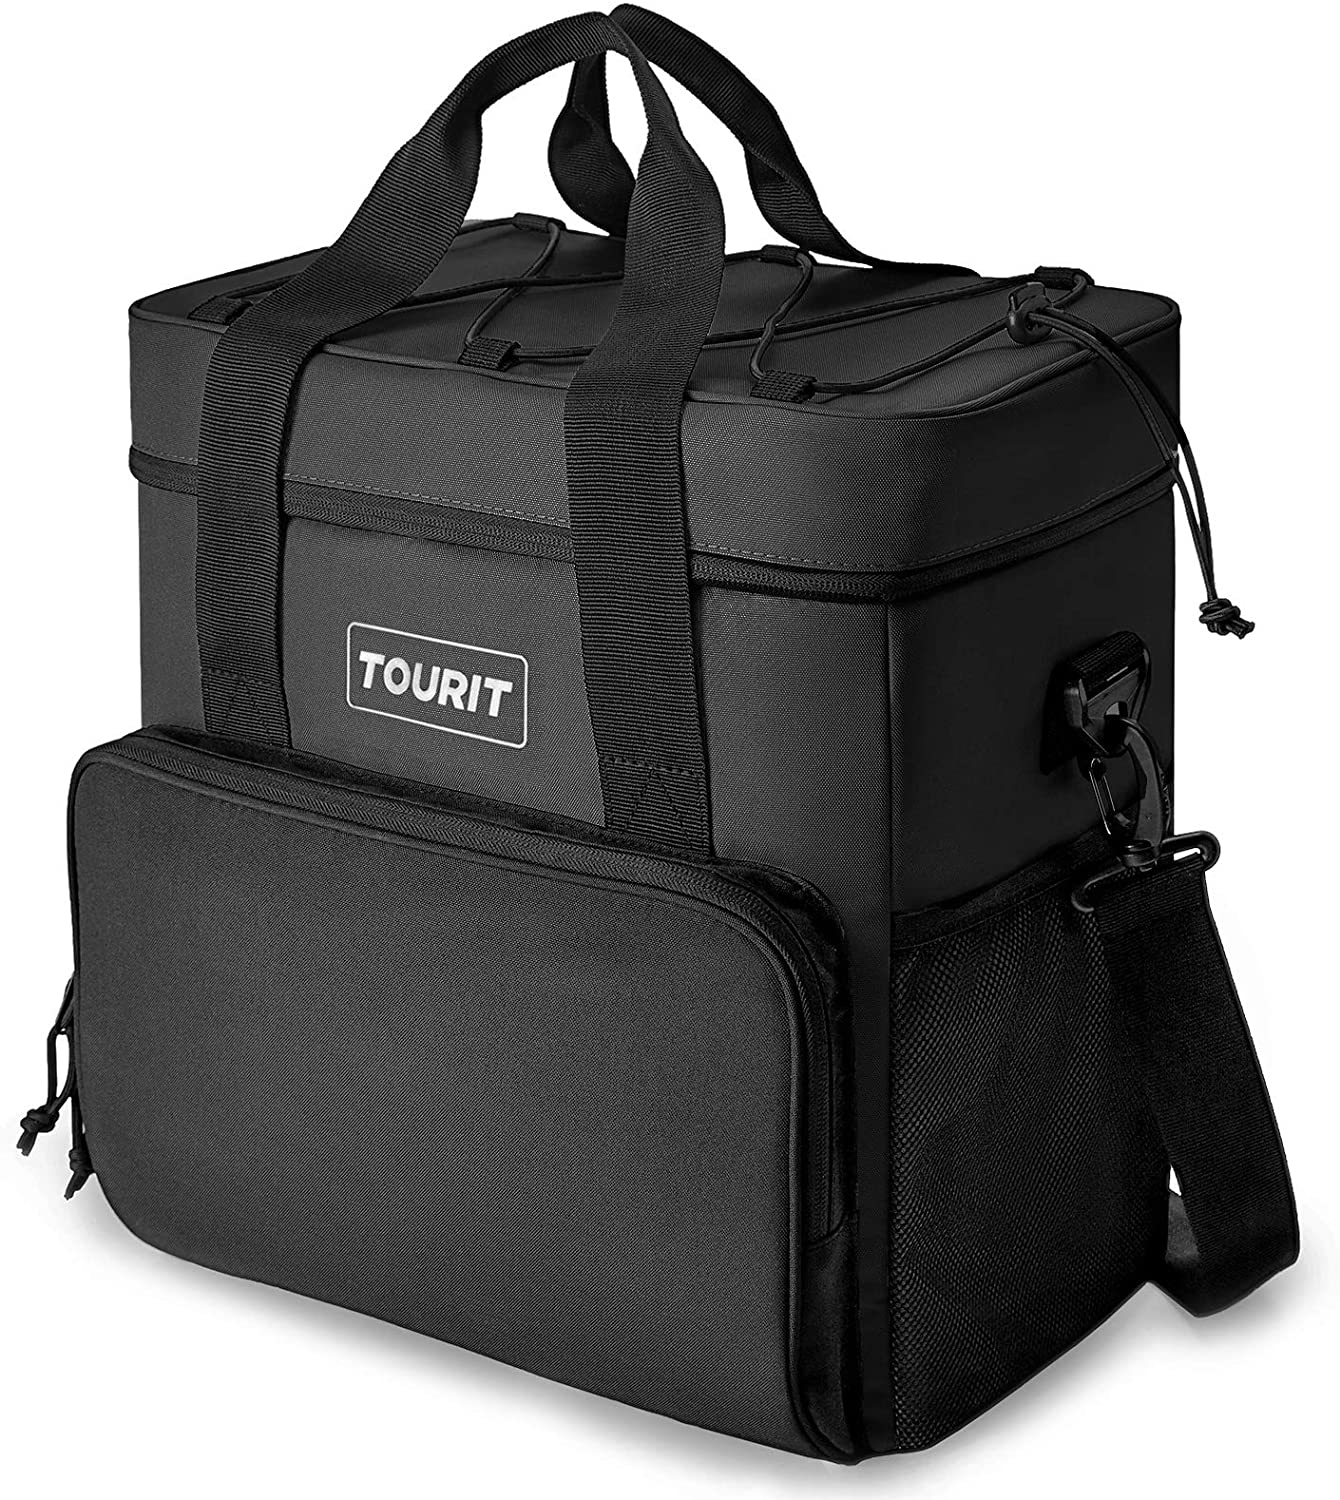 TOURIT Cooler Bag 35-Can Insulated Soft Cooler Portable Cooler Bag 24L Lunch Coolers for Picnic, Beach, Work, Trip, Black